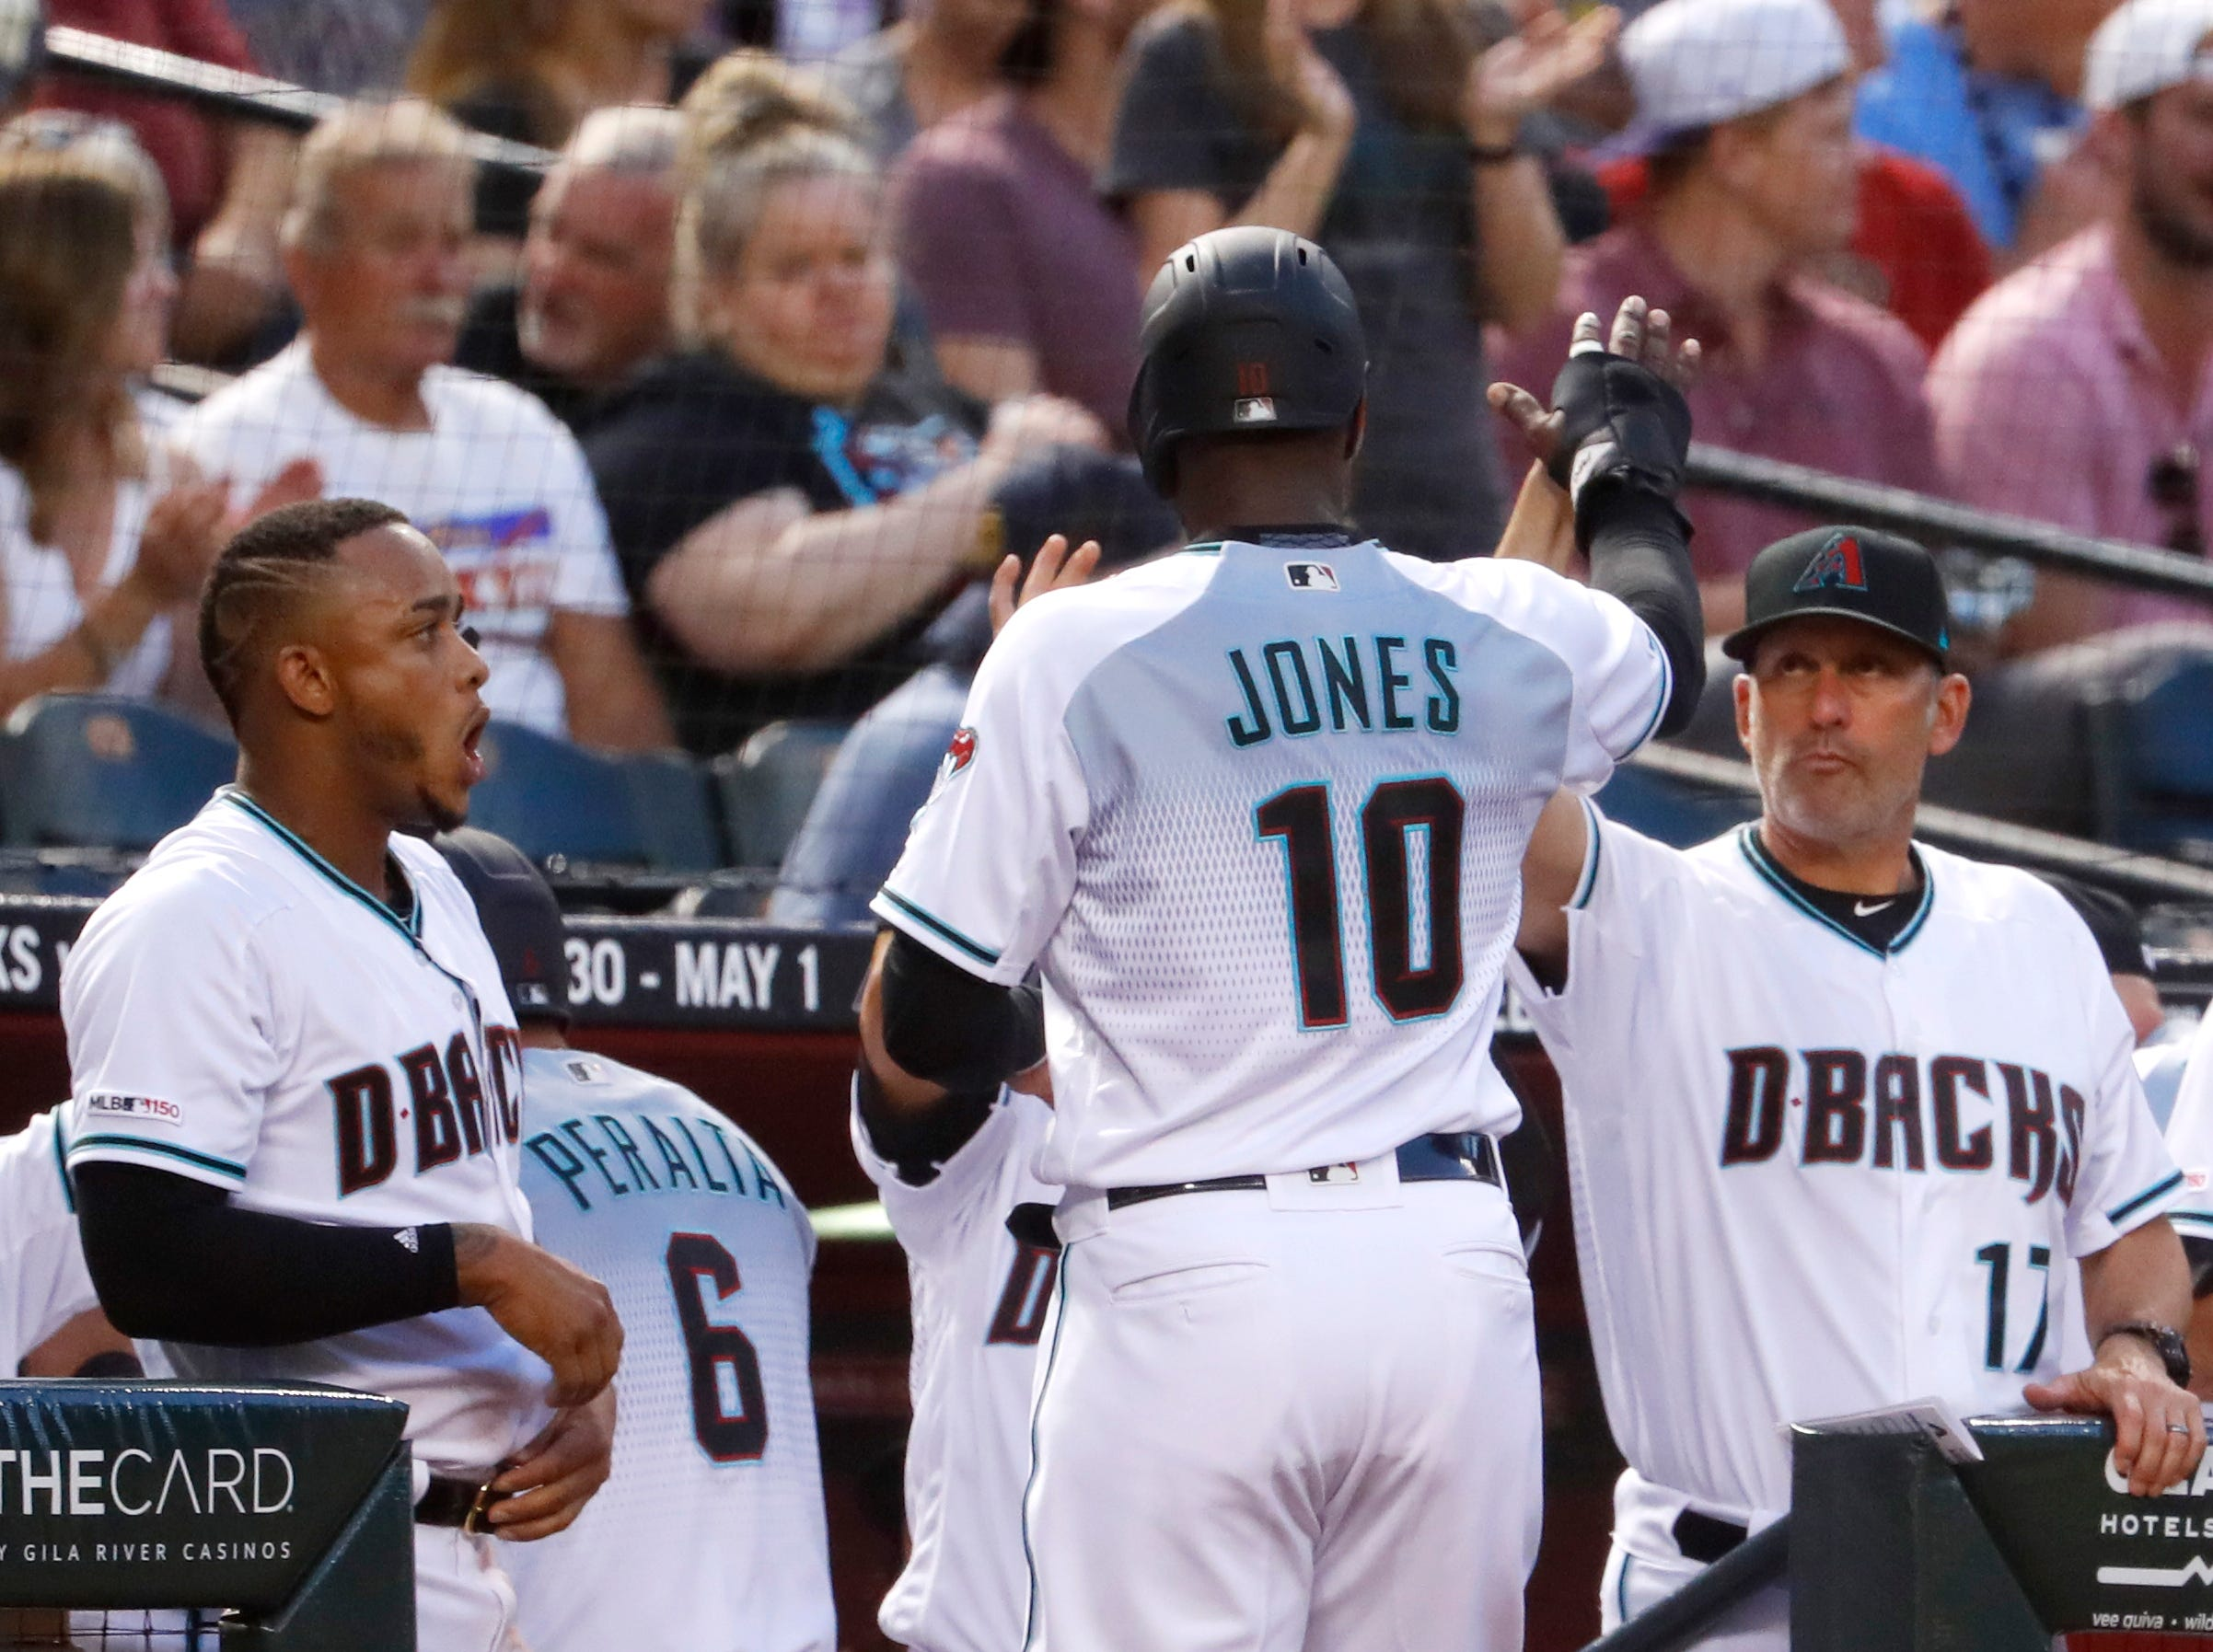 Diamondbacks' manager Torey Lovullo (R) high-fives Adam Jones (10) after Jones scored during the first inning at Chase Field in Phoenix, Ariz. on April 26, 2019.